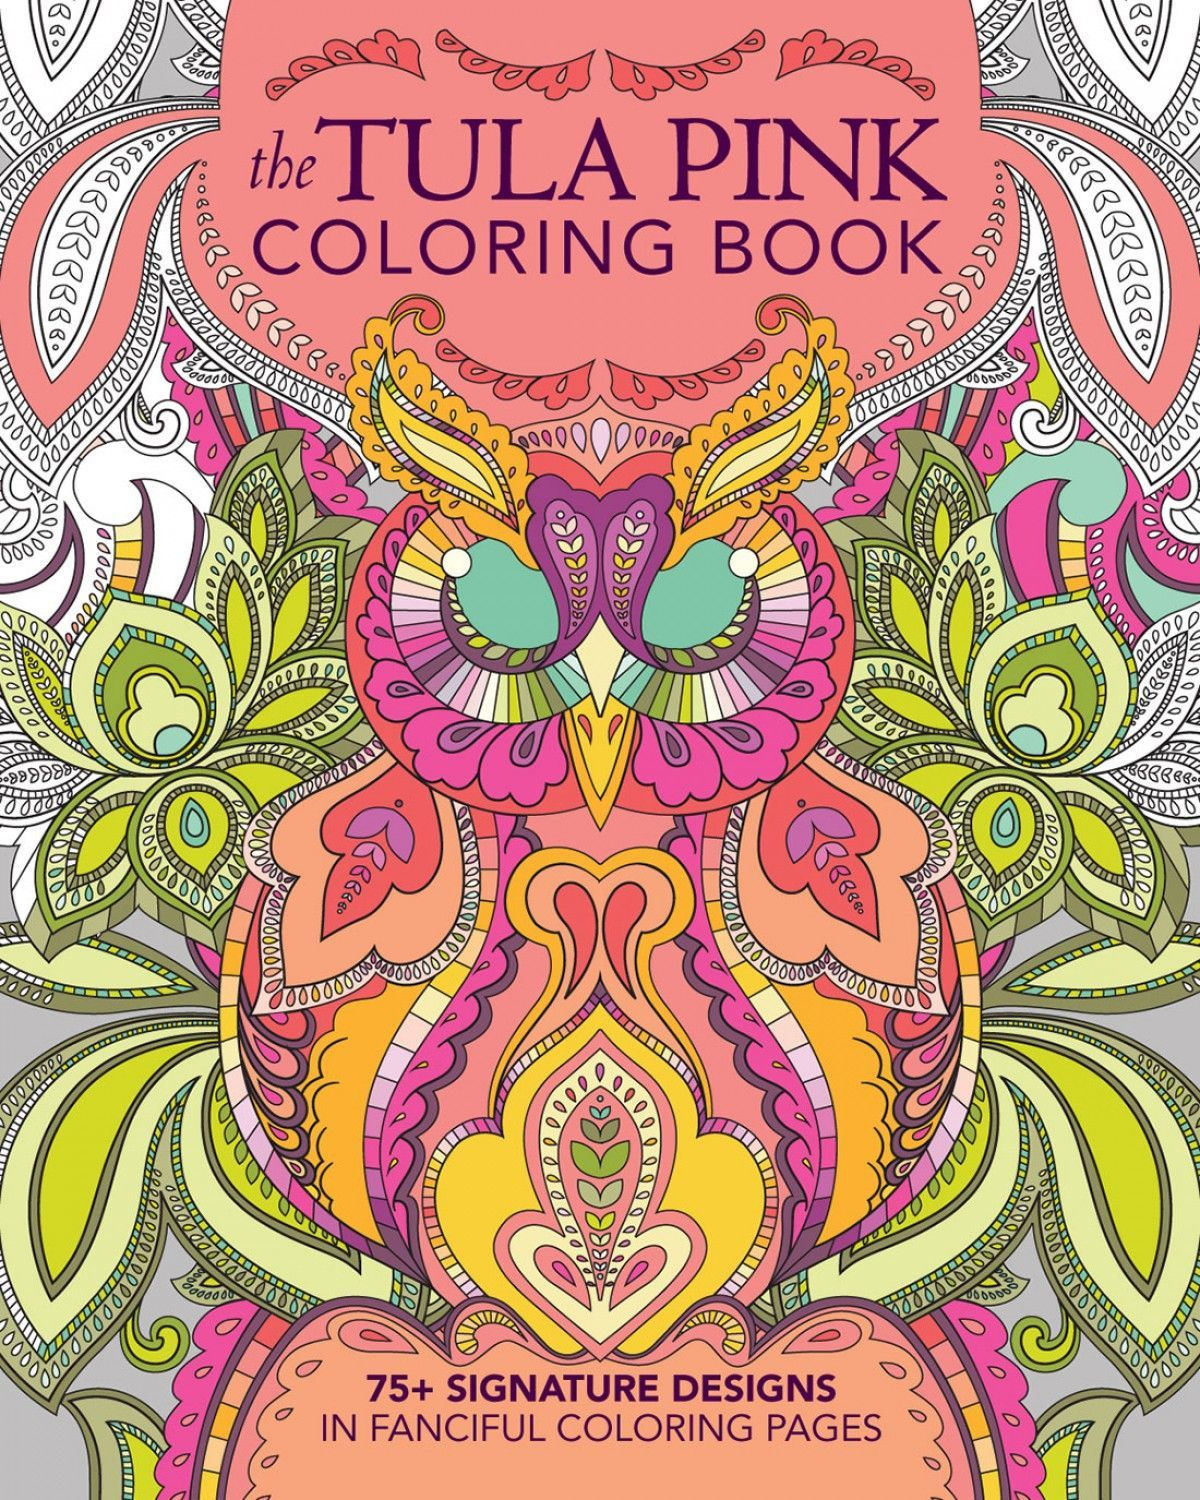 The tula pink coloring book - The Tula Pink Adult Coloring Book 75 Designs